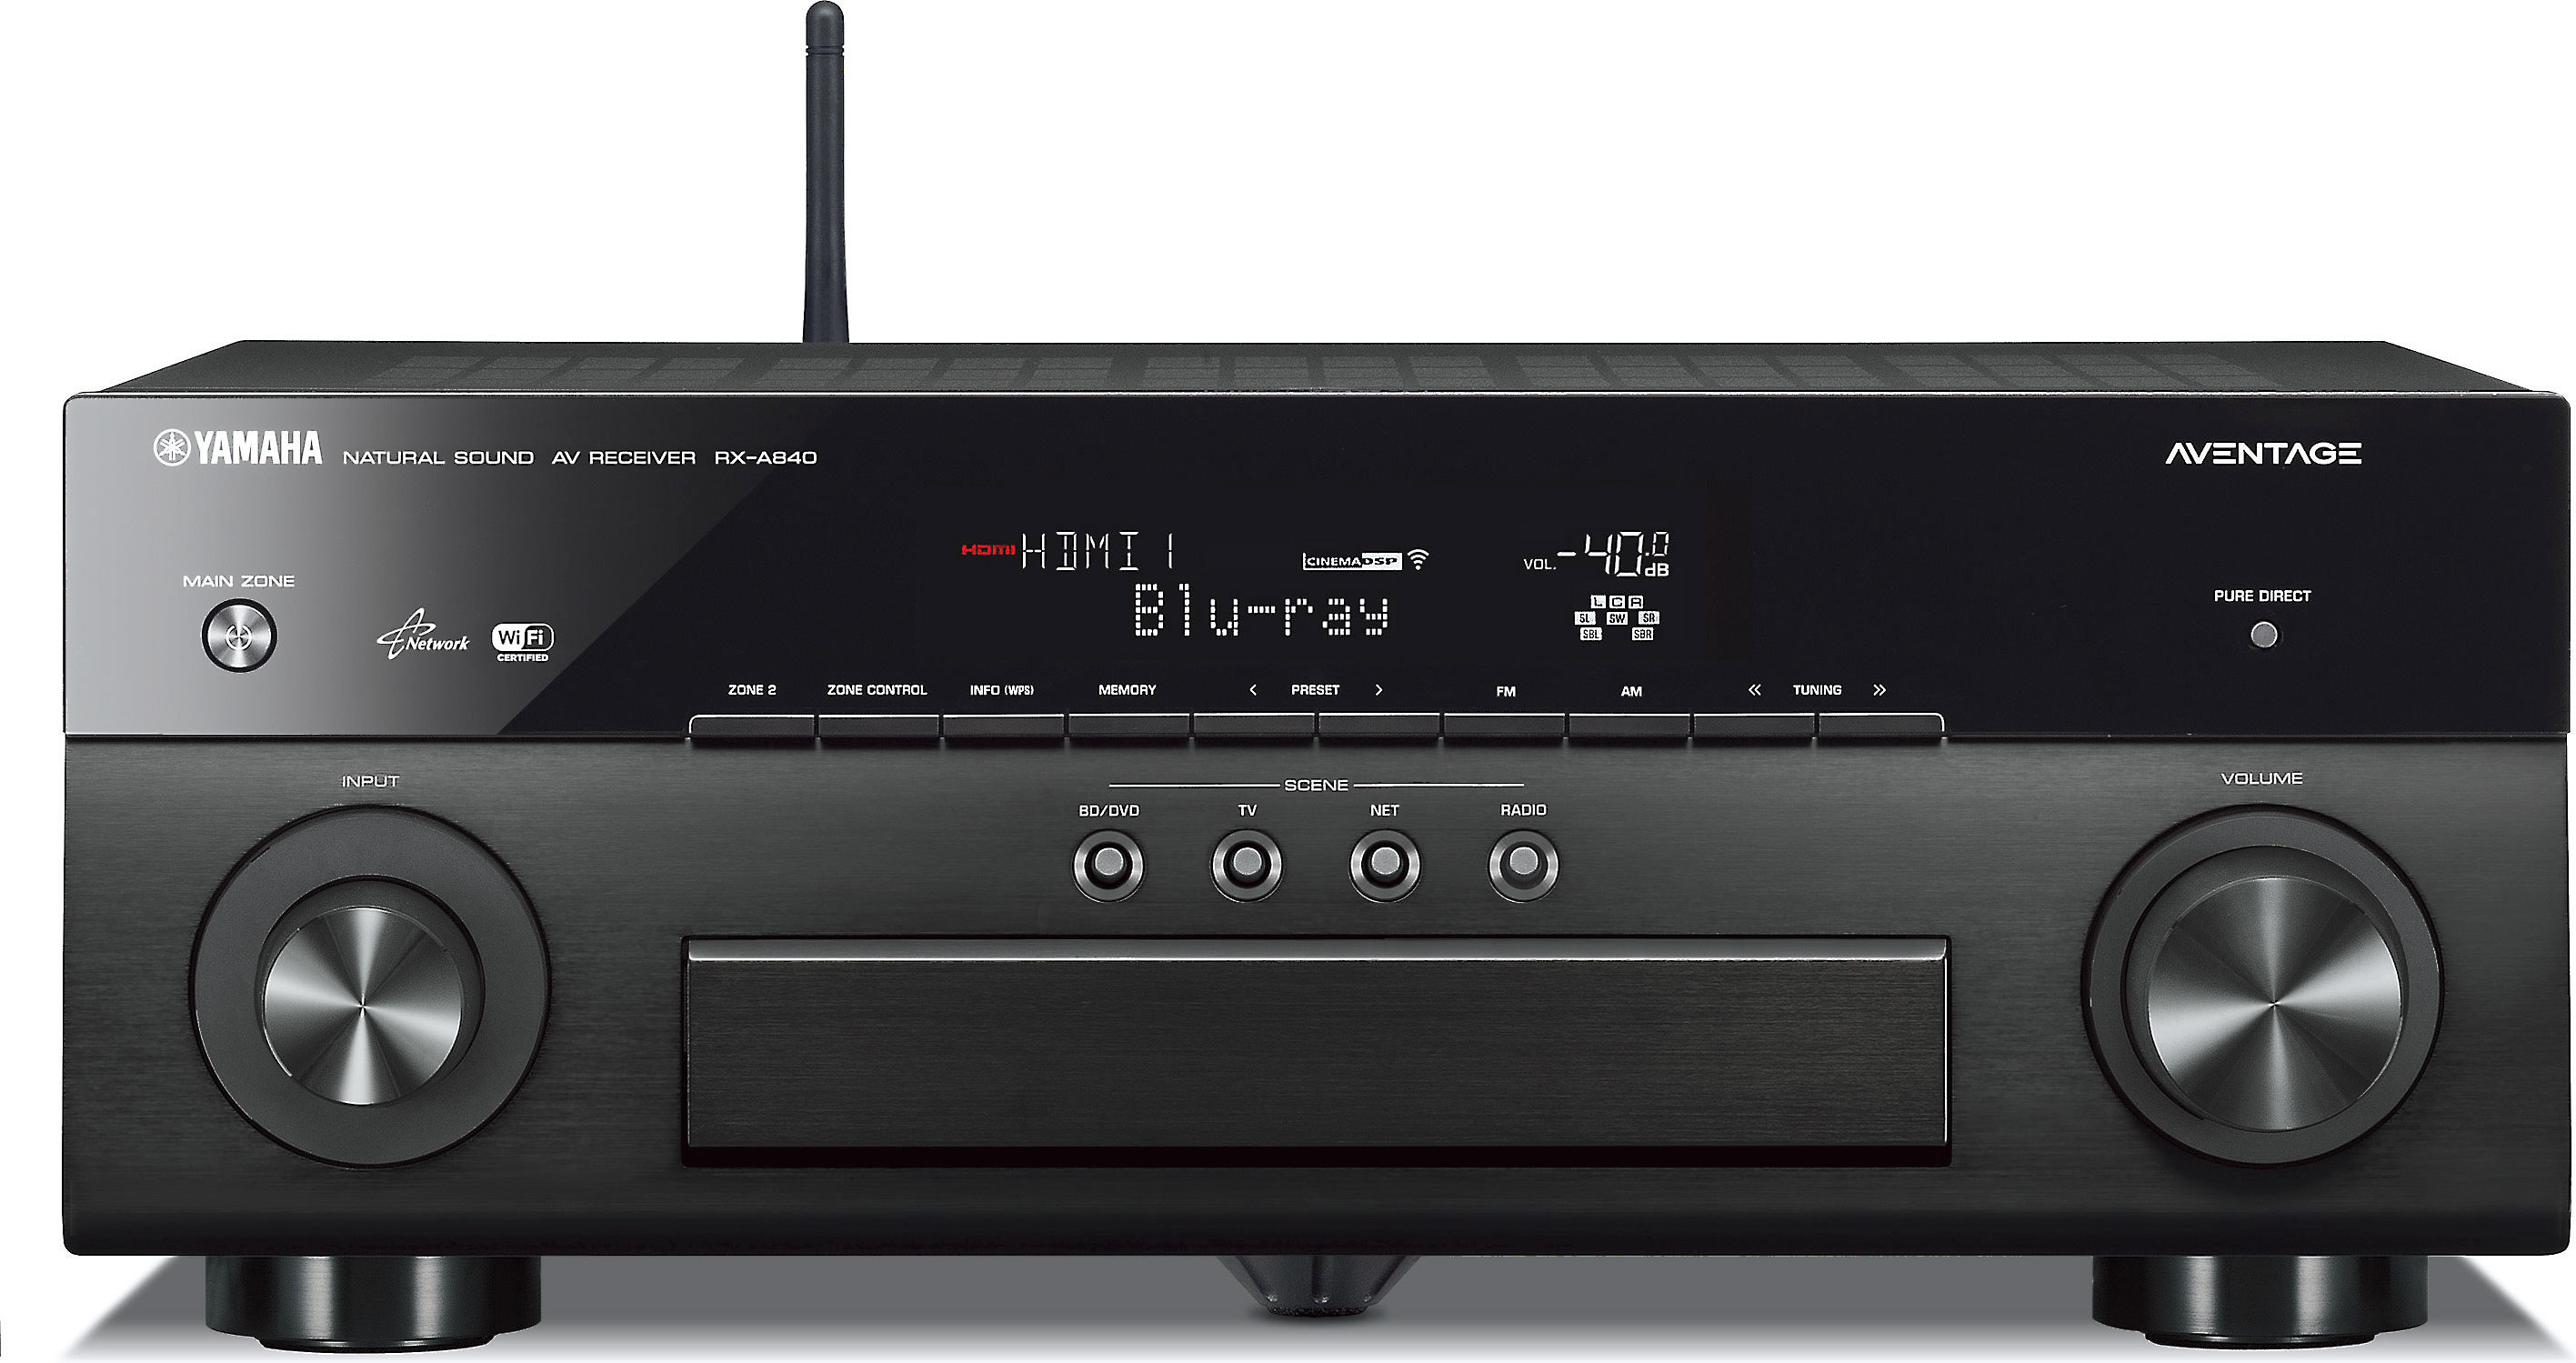 Onkyo TX-NR809 vs Yamaha Aventage RX-A840 Review - Compare